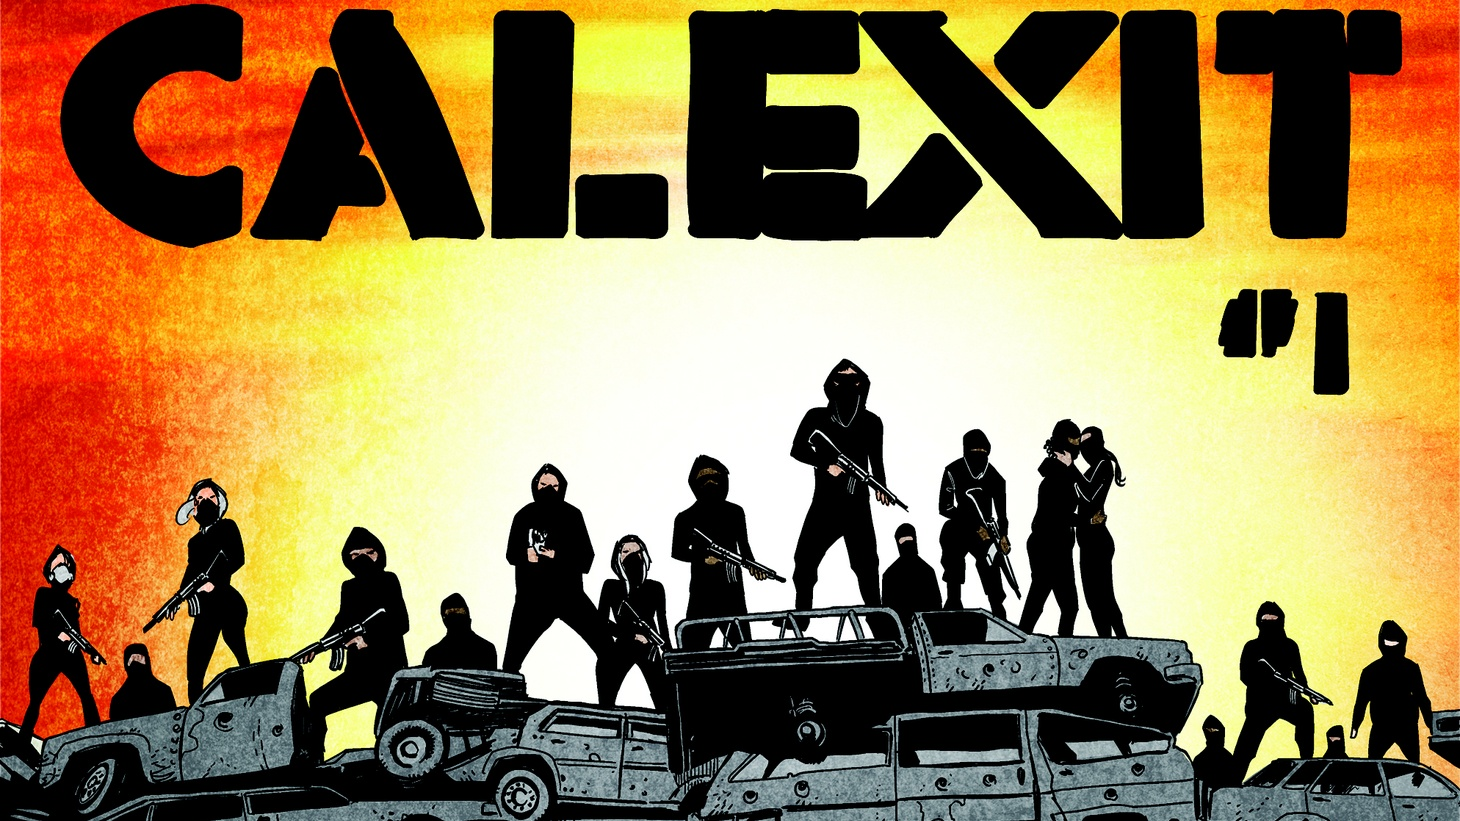 """In the new graphic novel series """"Calexit,"""" an autocratic president is deporting all immigrants. California secedes, but a civil war breaks out within the state, and parts of it are occupied by federal troops. A young Mexican immigrant flees LA and leads a resistance."""